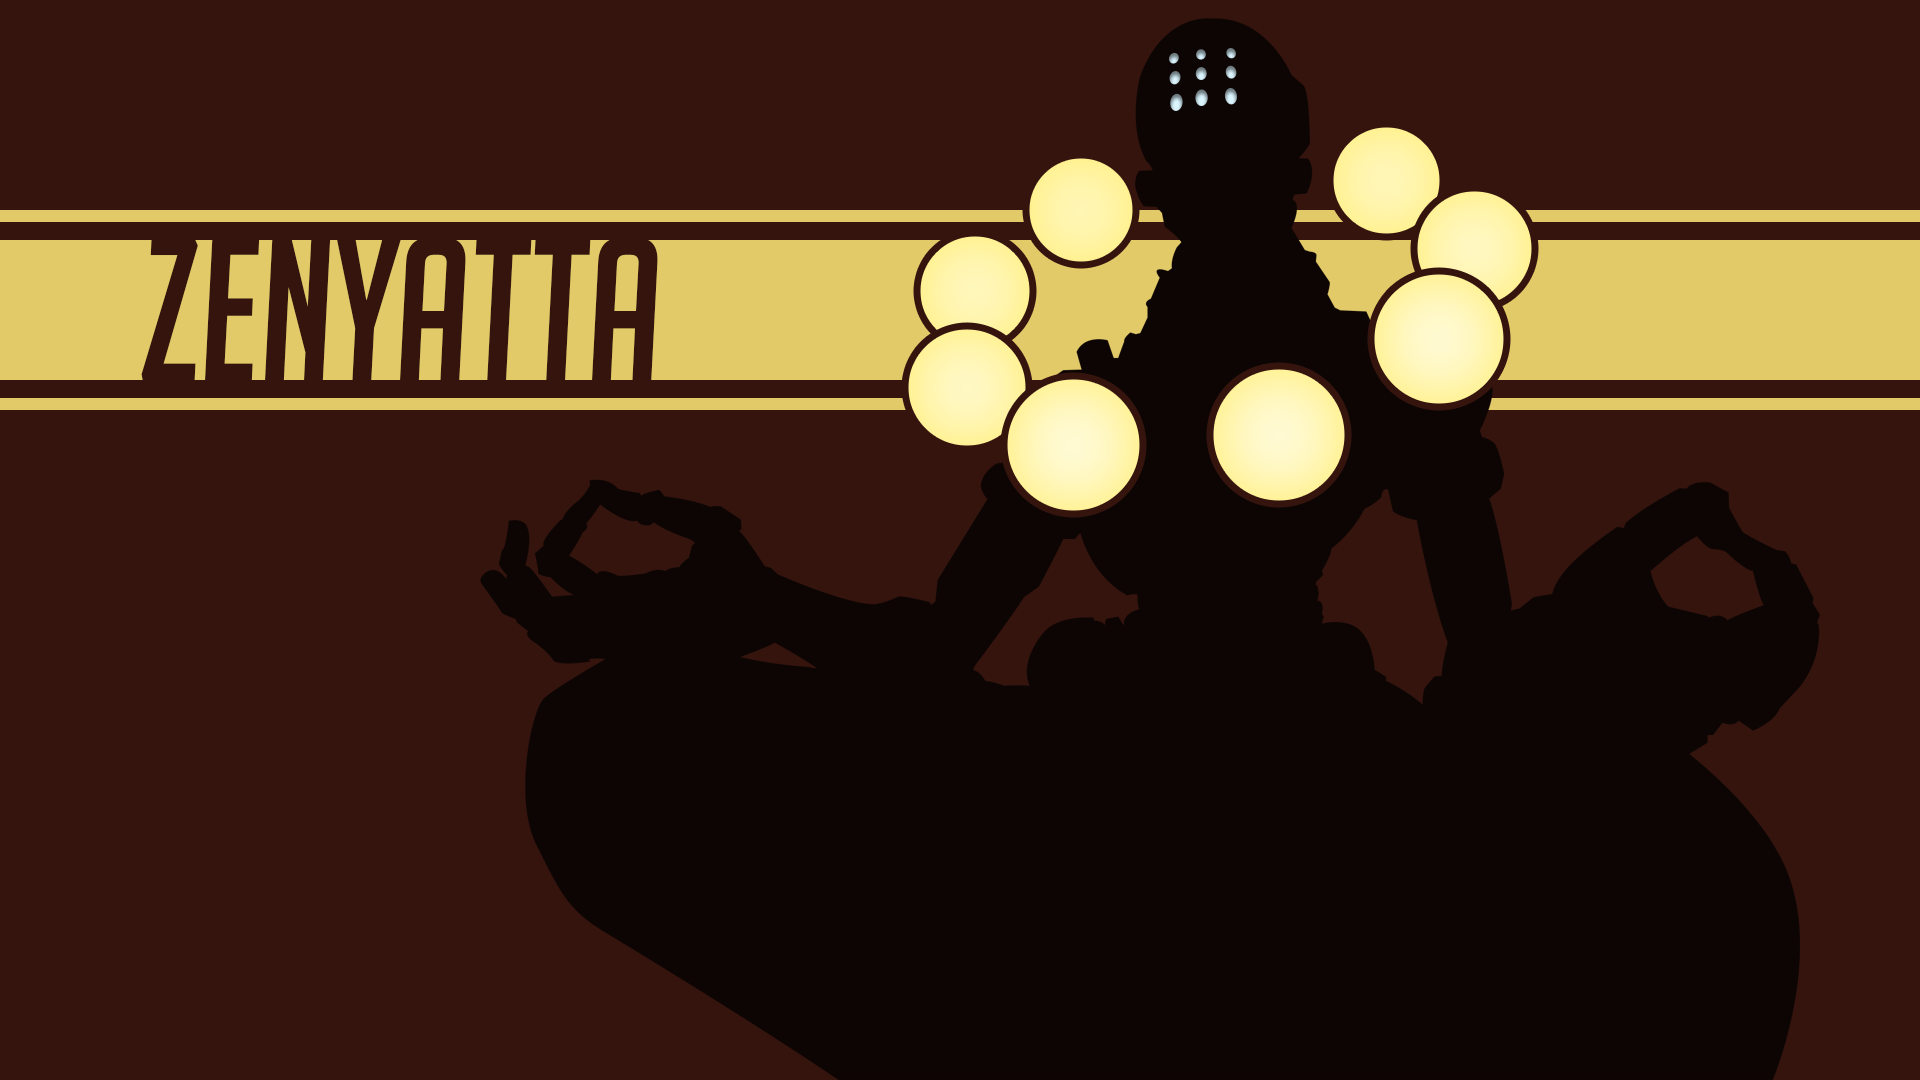 Overwatch Zenyatta Wallpapers High Quality Is Cool Wallpapers